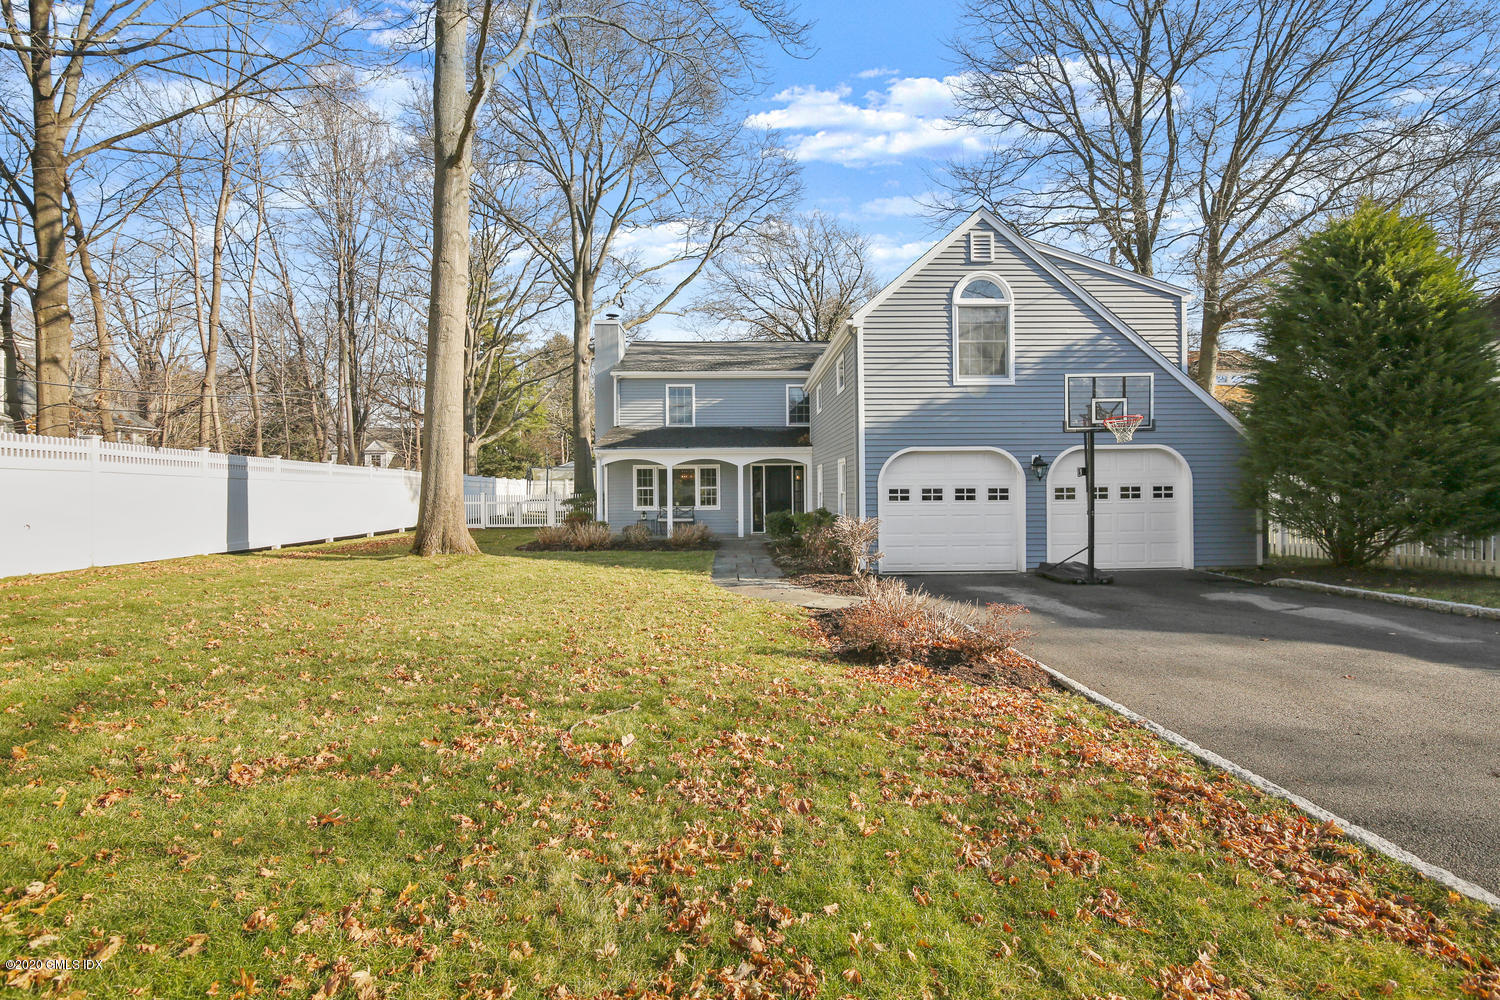 408 Sound Beach Avenue,Old Greenwich,Connecticut 06870,4 Bedrooms Bedrooms,4 BathroomsBathrooms,Single family,Sound Beach,108623